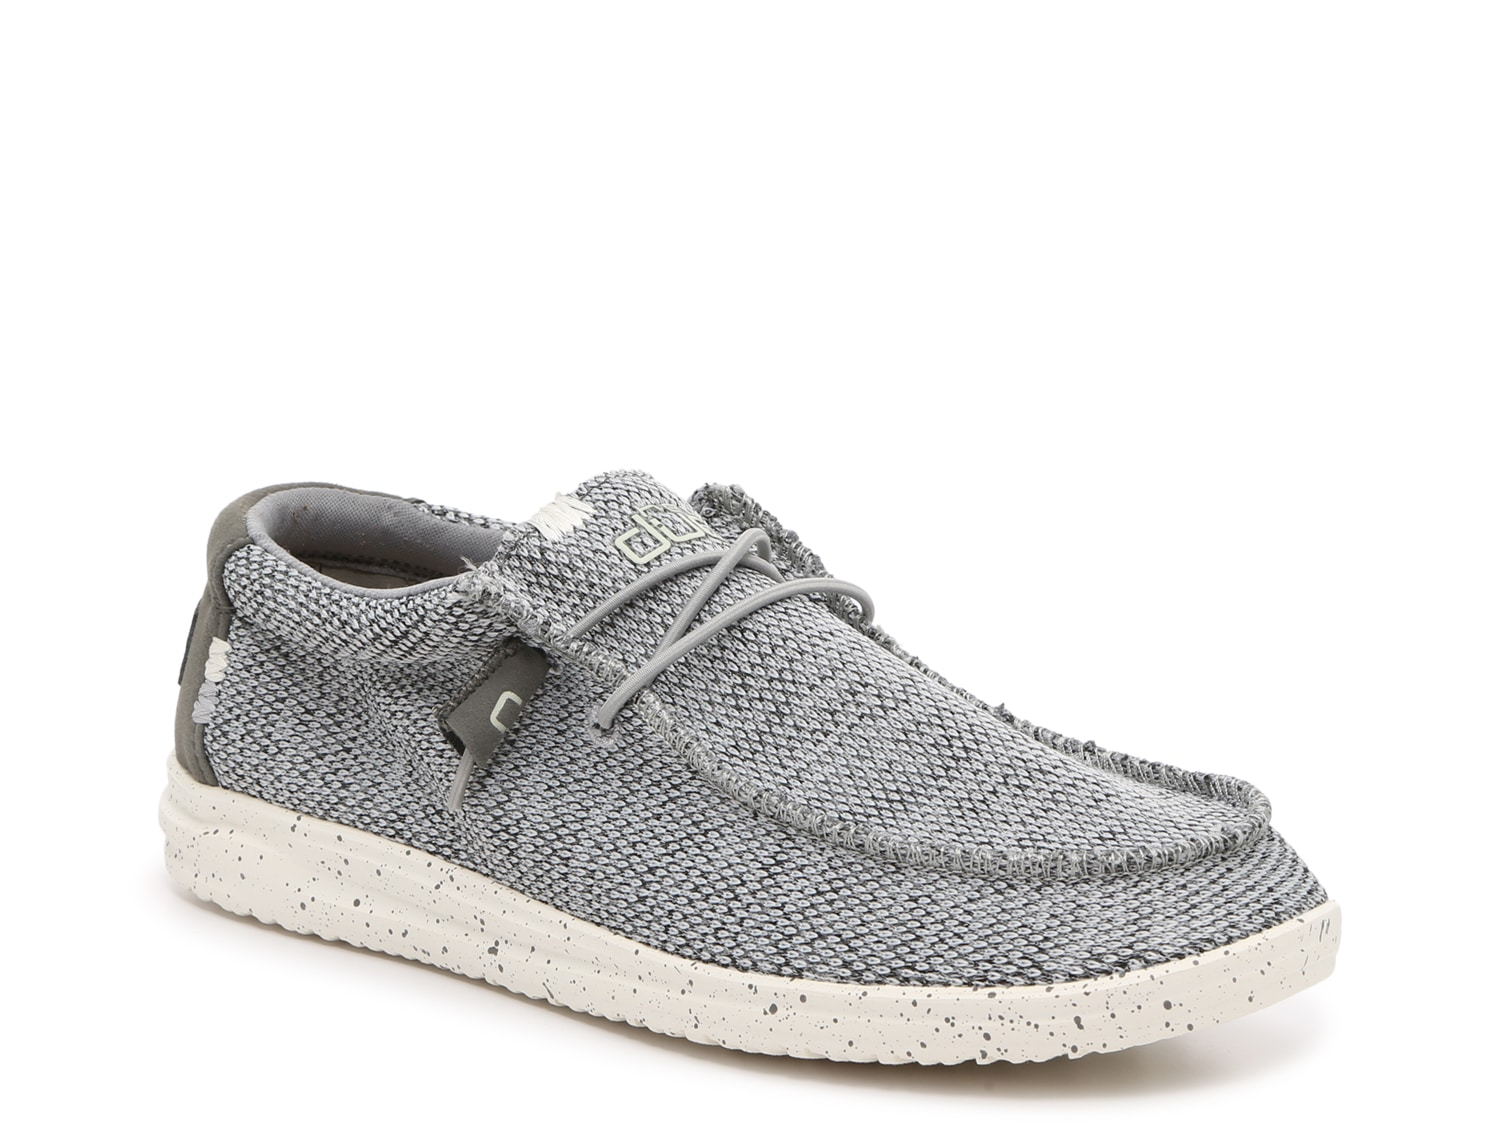 Wally Free Slip-On; father's day gift ideas